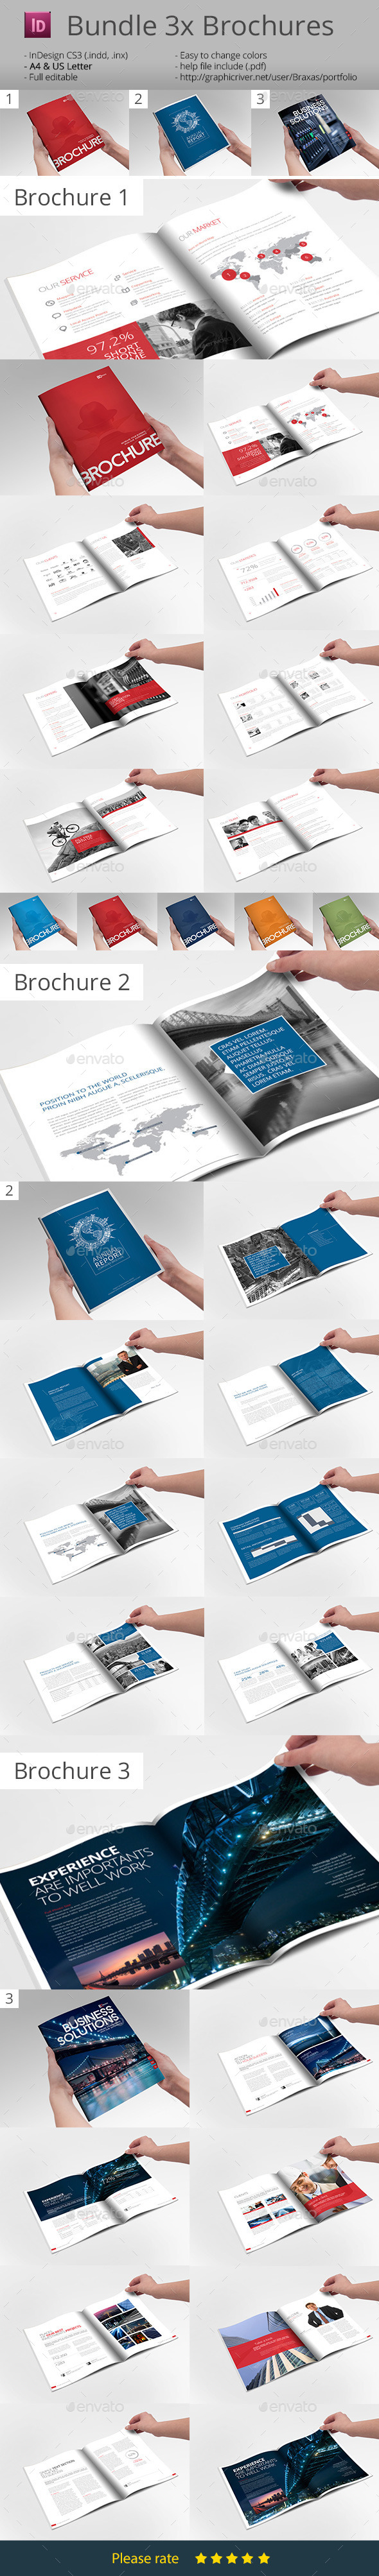 Bundle 3x Business Brochures - Informational Brochures